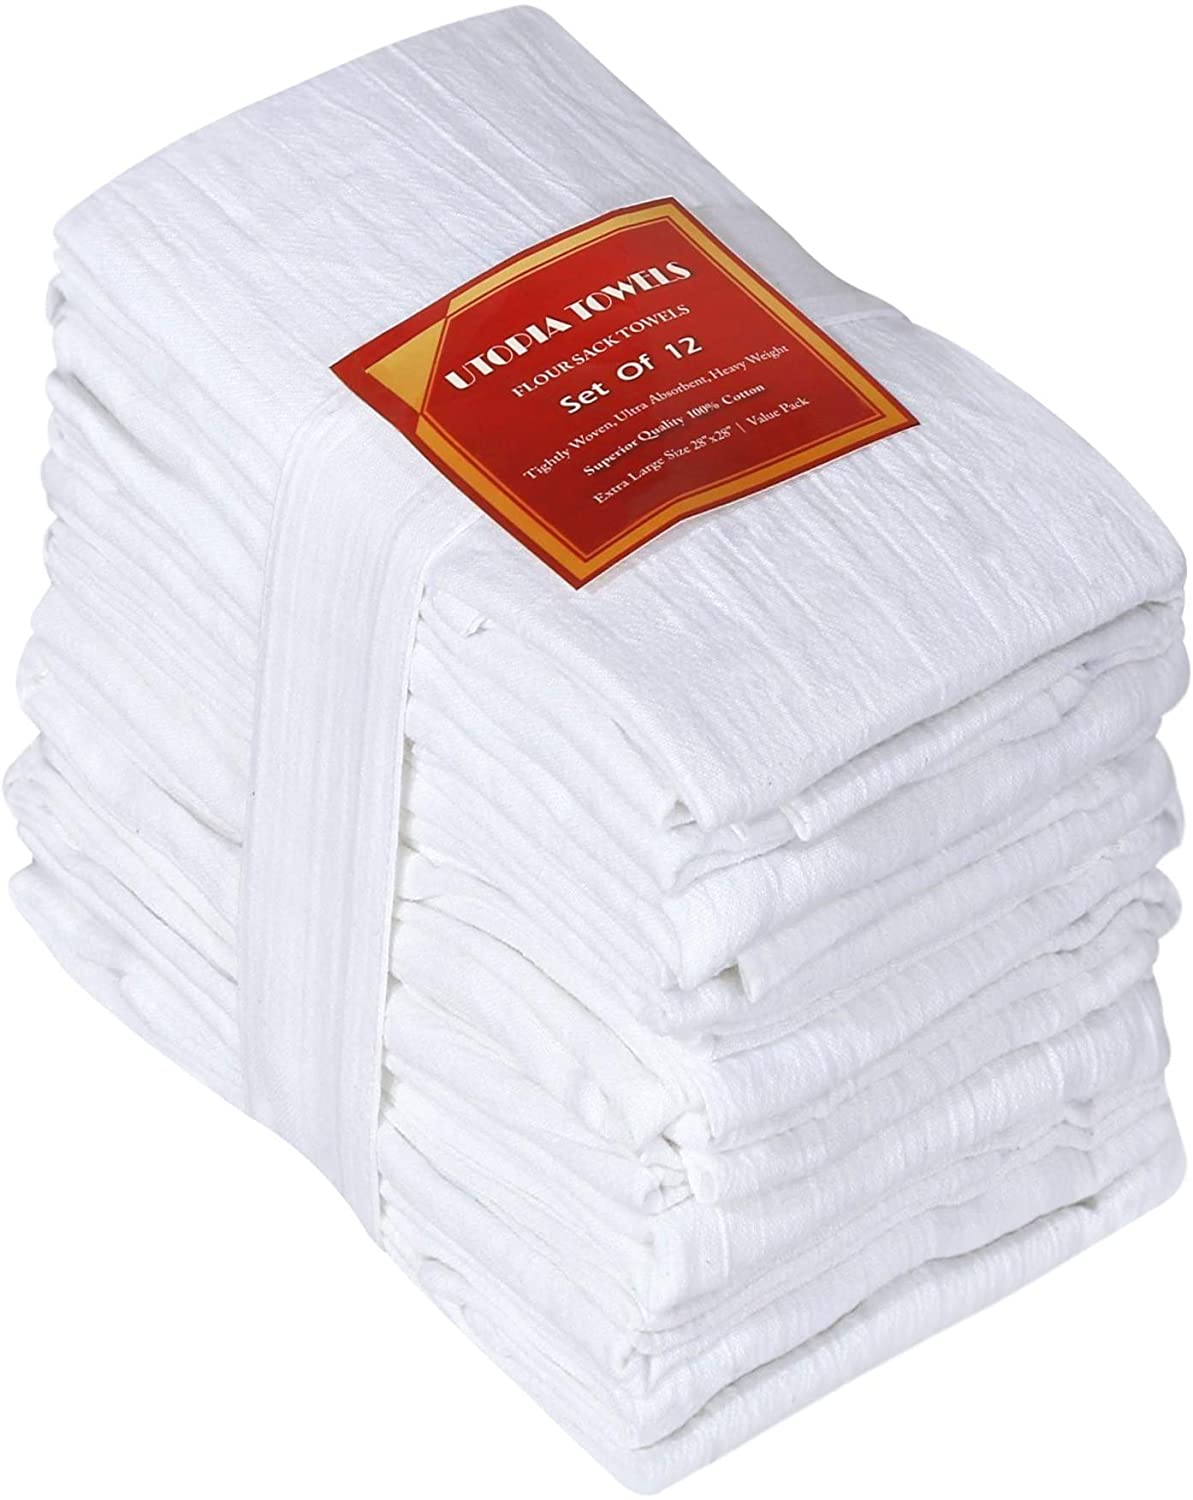 Utopia Over item handling ☆ Ranking TOP10 Kitchen Flour Sack Dish 12 Towels Cotton Pack To